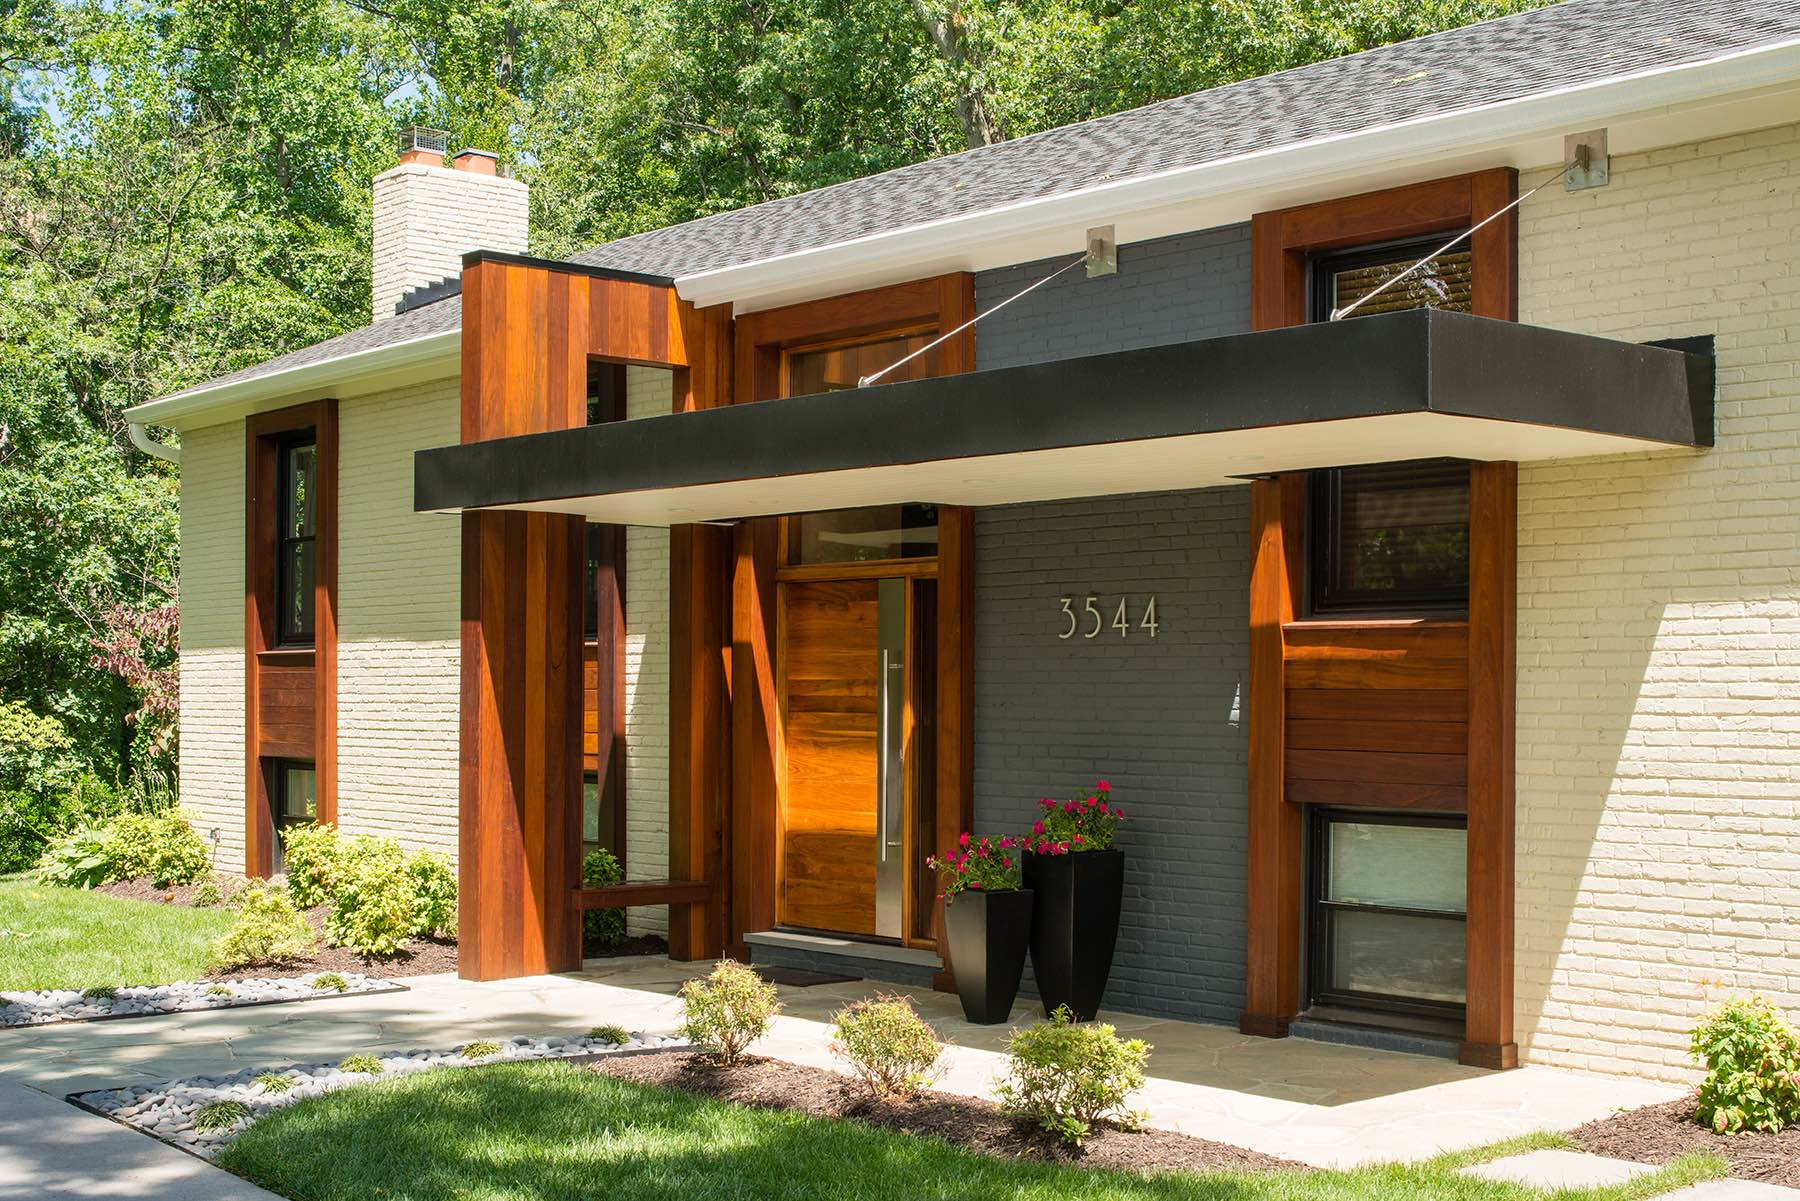 Contemporary home exterior with striking hanging portico and sculptural ipé wood